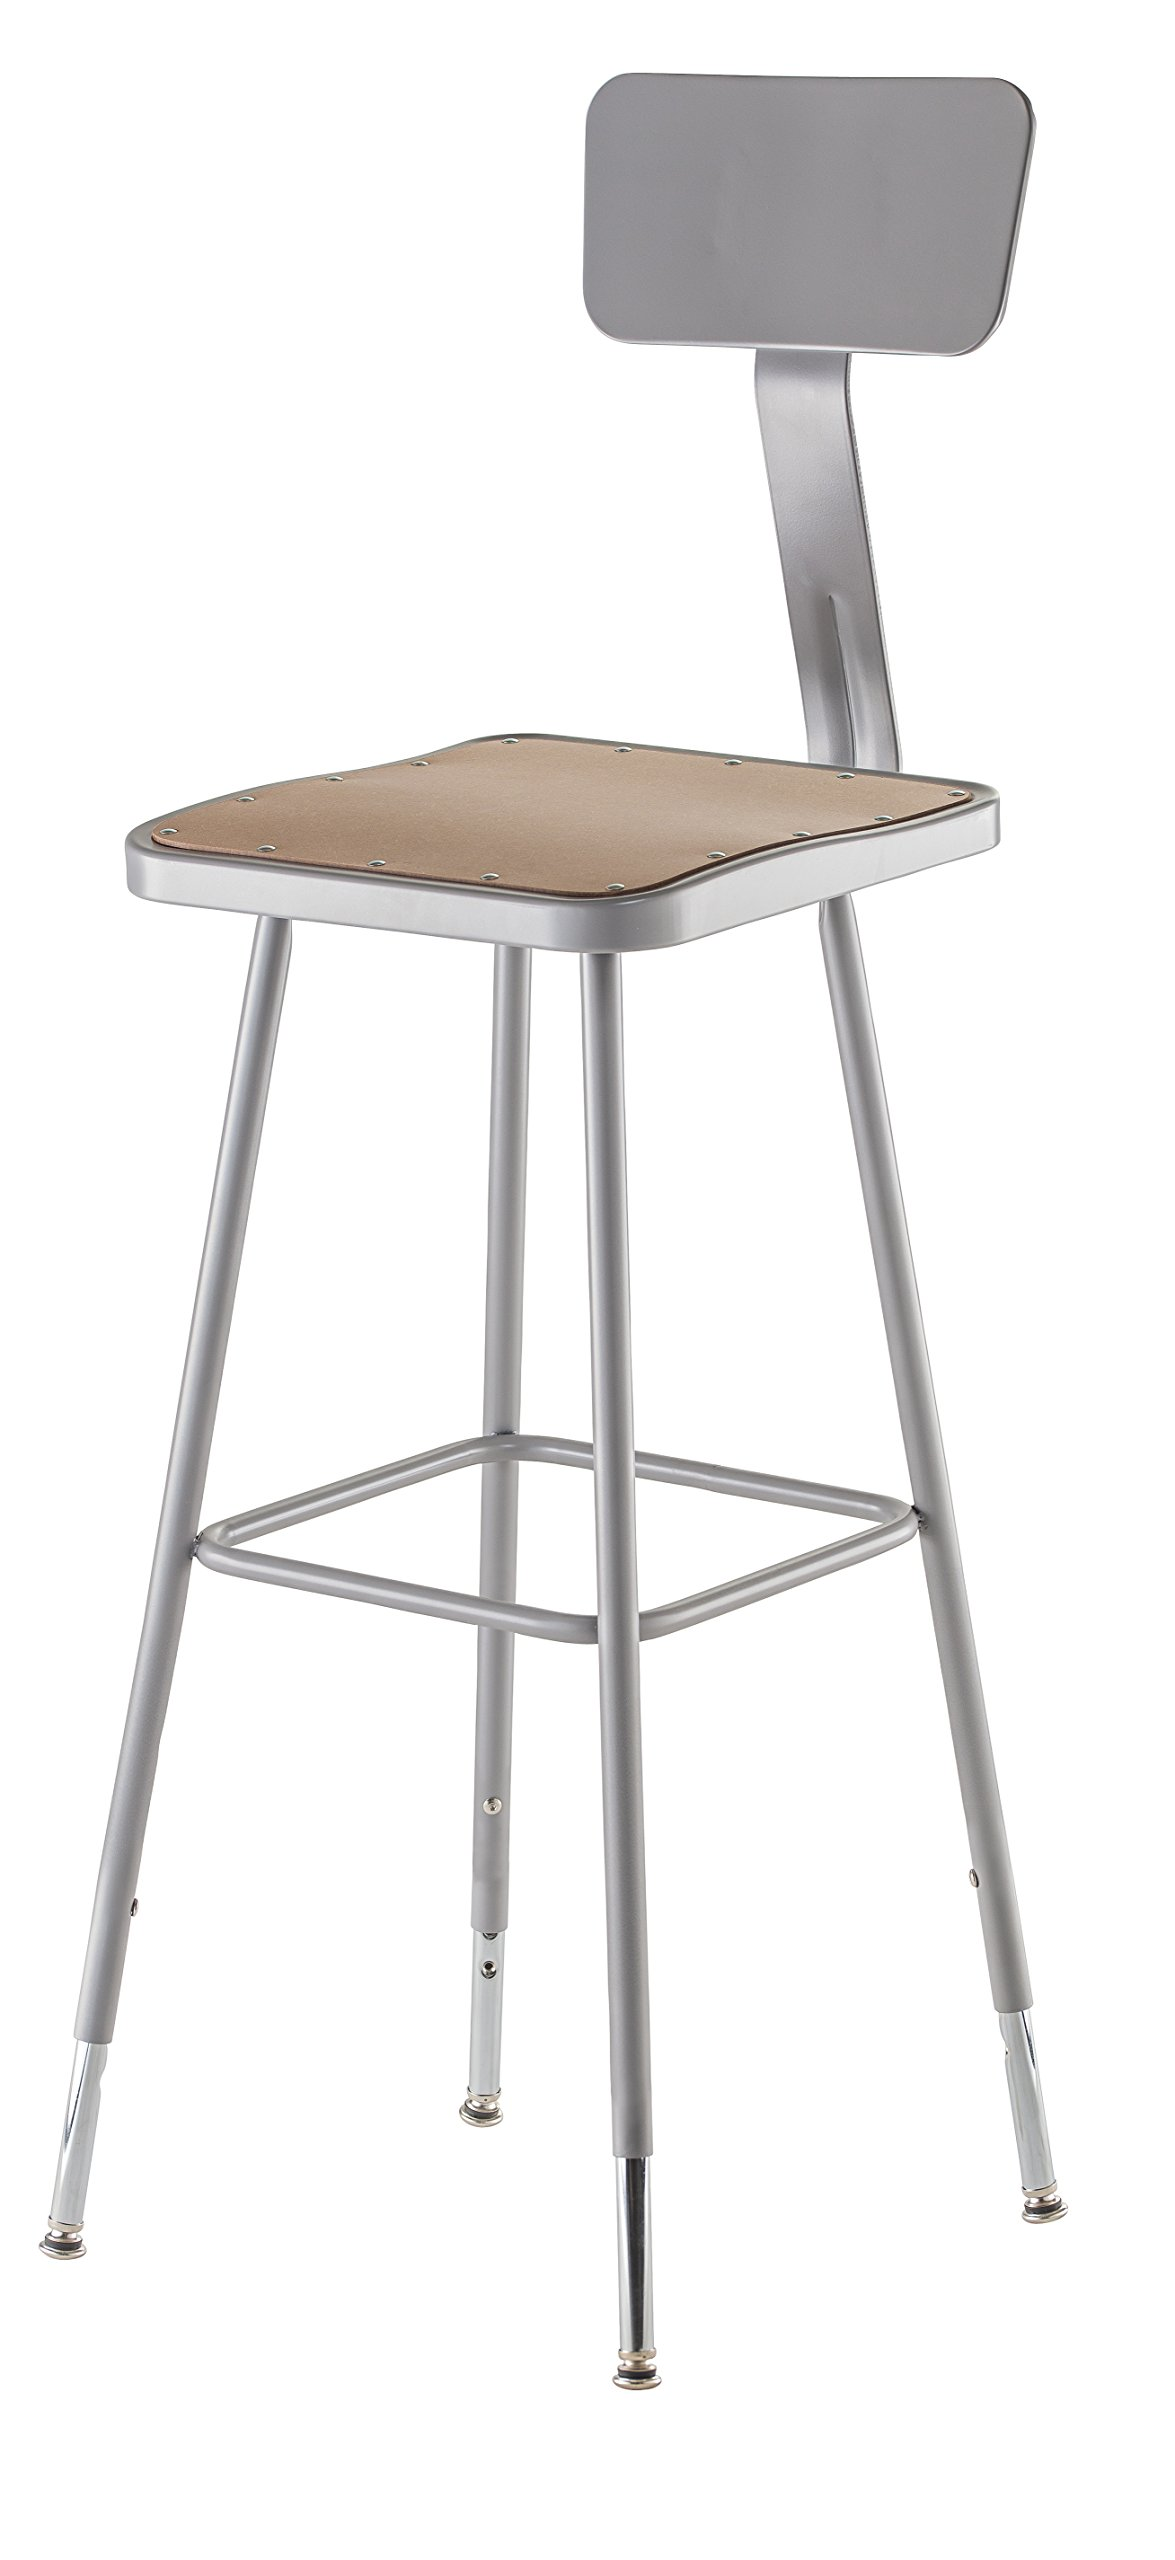 NPS 32''-39'' Height Adjustable Heavy Duty Square Seat Steel Stool With Backrest, Grey